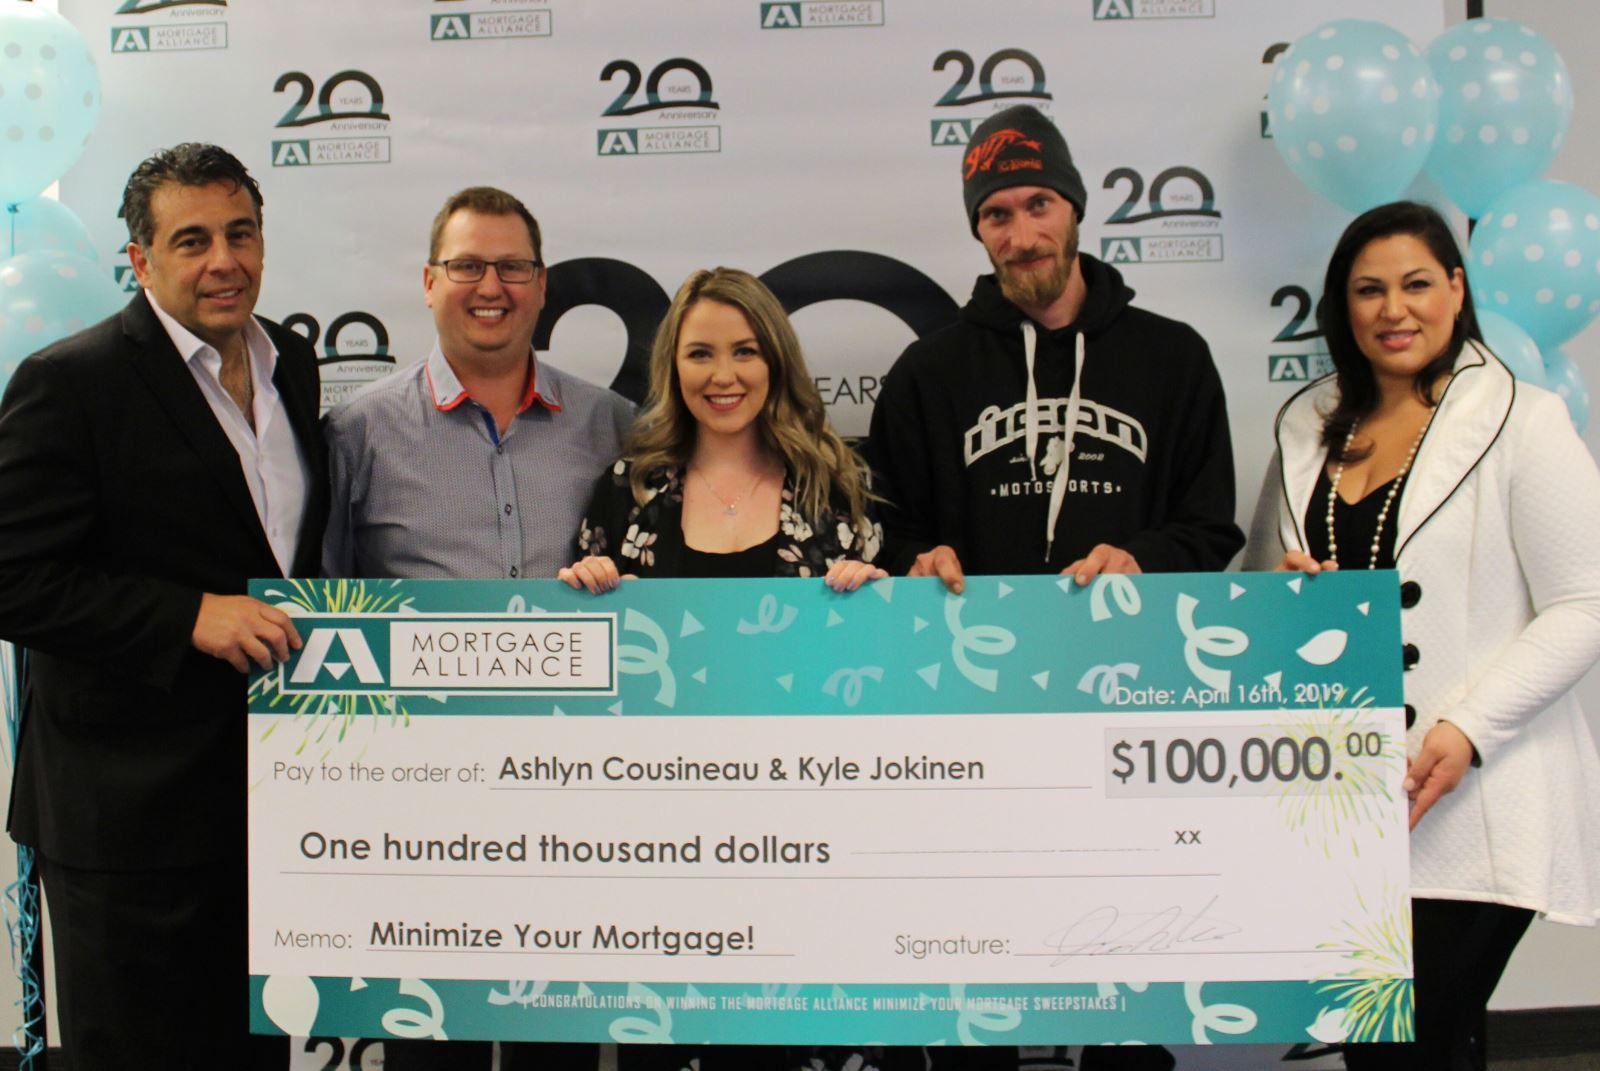 It pays to use the RightBroker®. Mortgage Alliance awards $100,000 to a lucky couple from Sudbury!